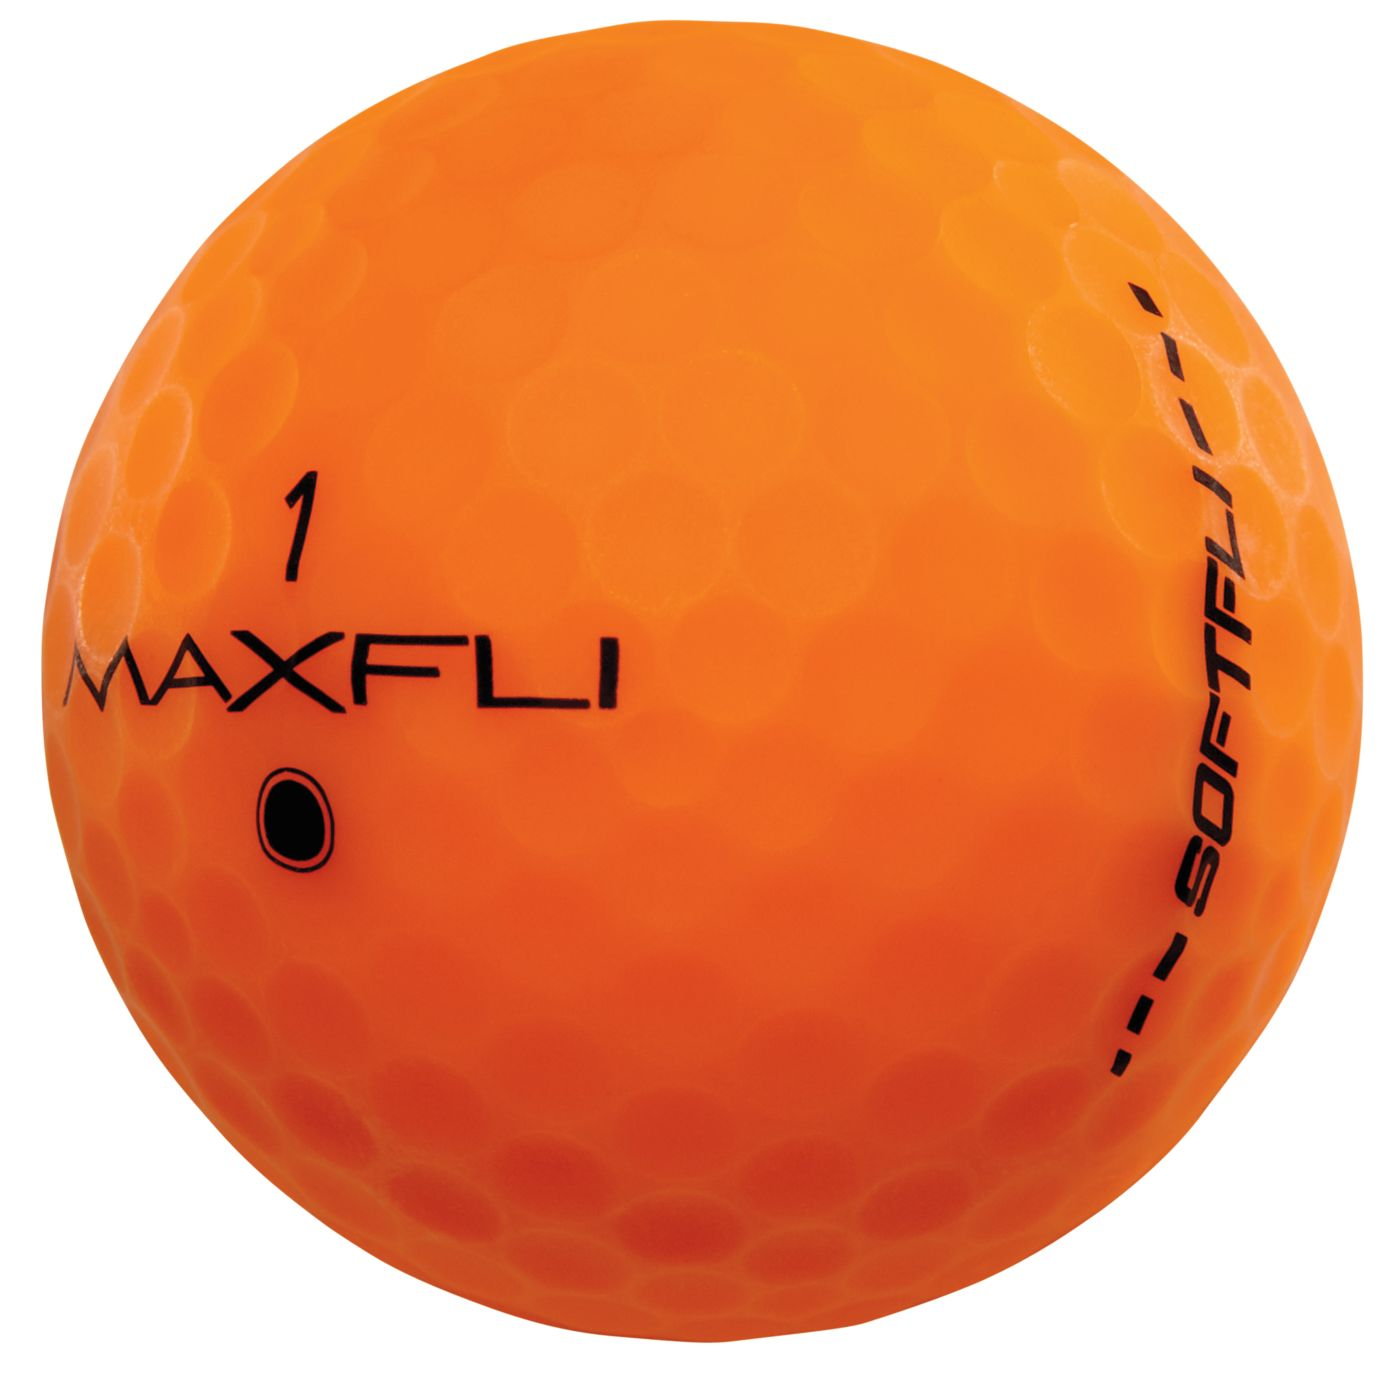 Maxfli SoftFli Matte Golf Balls – Orange - 12 Pack